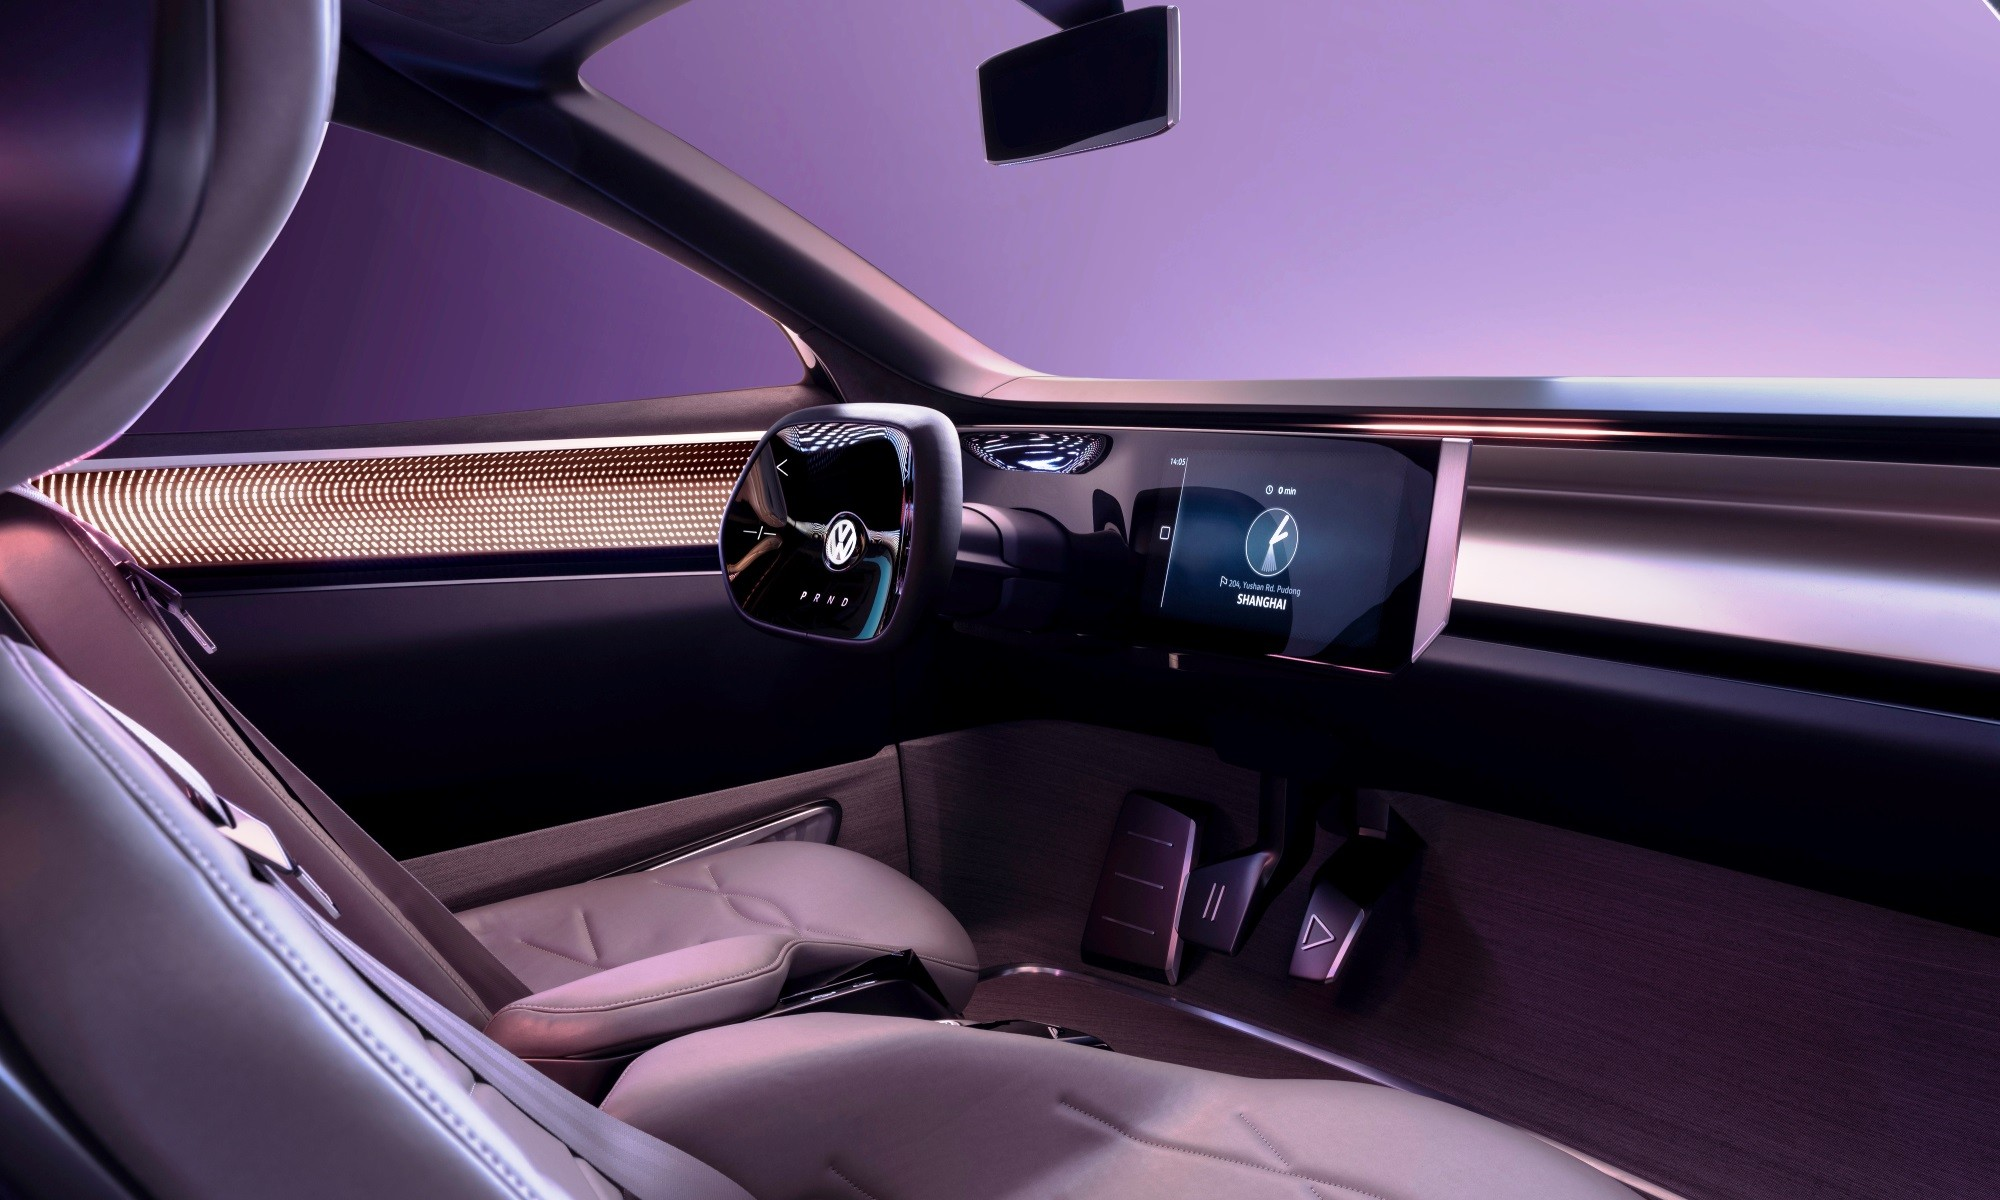 VW ID Roomzz Concept rear interior